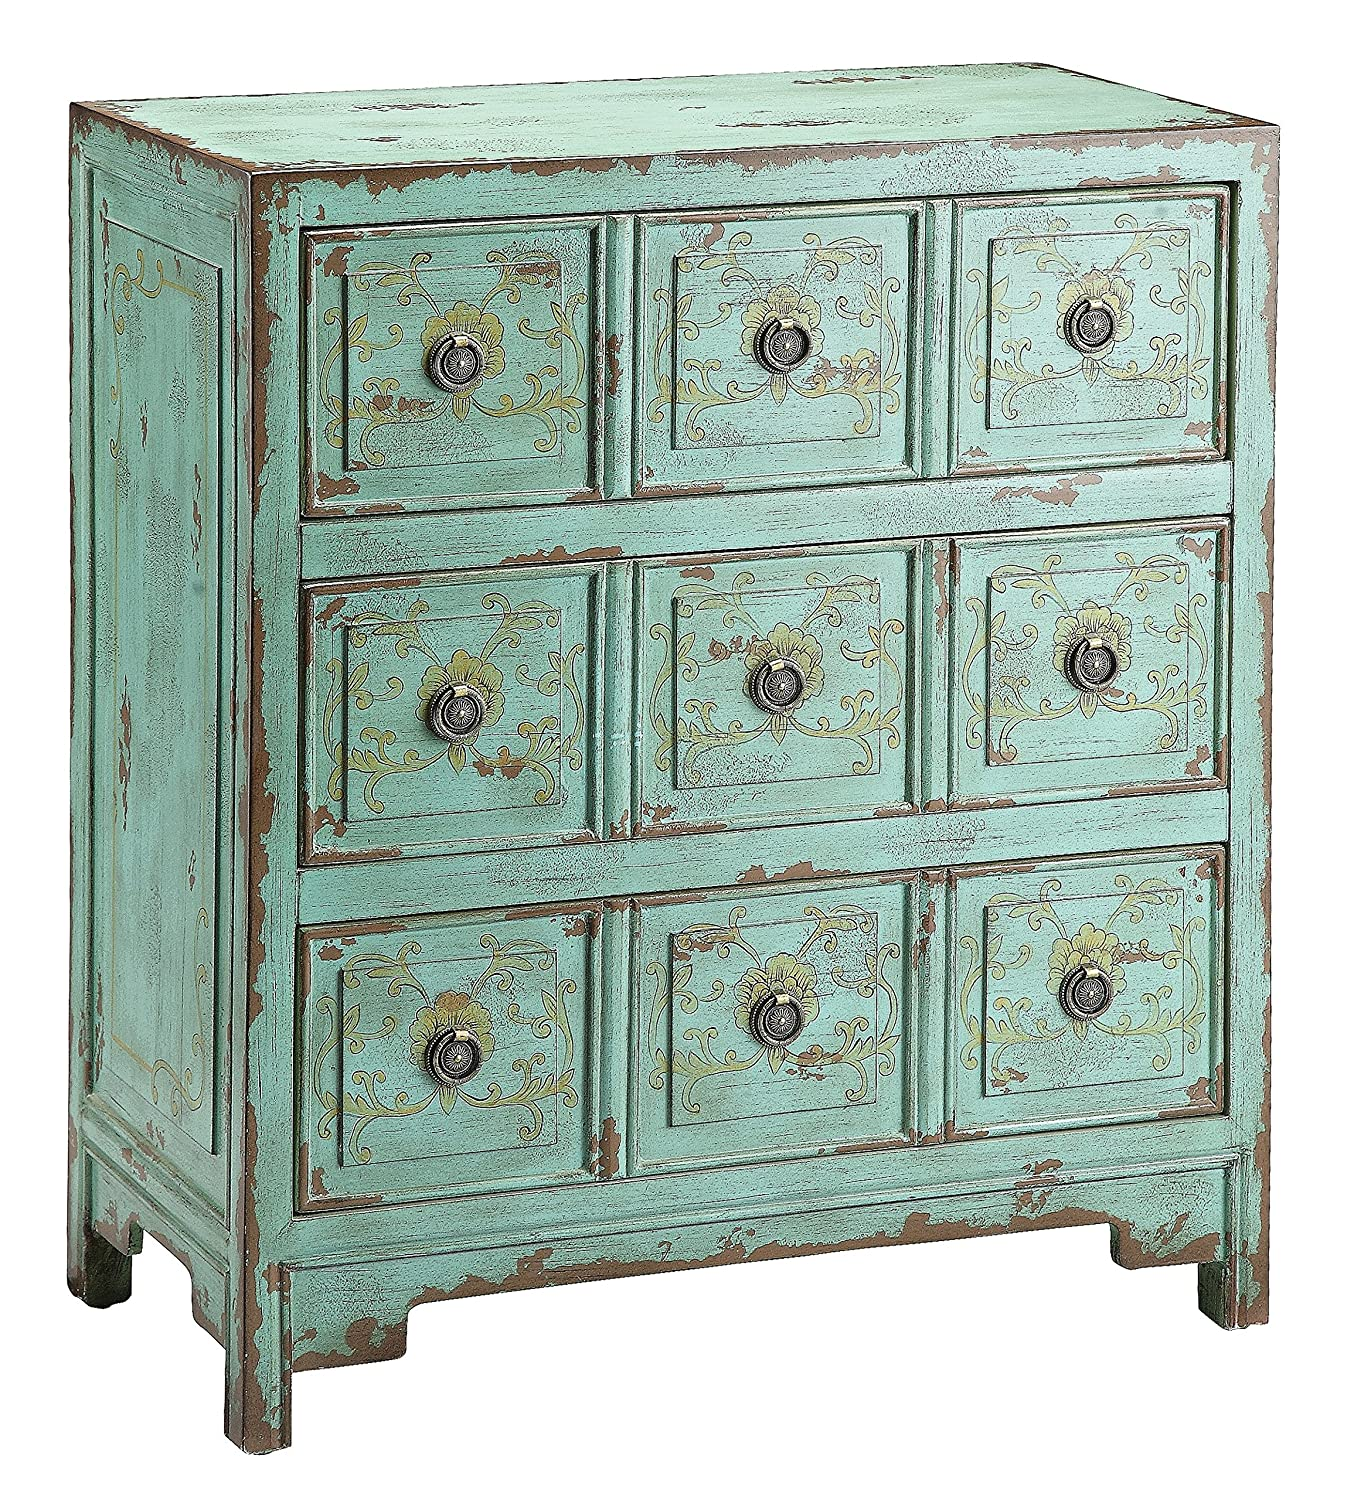 amazoncom stein world furniture anna apothecary chest kitchen dining apothecary style furniture patio